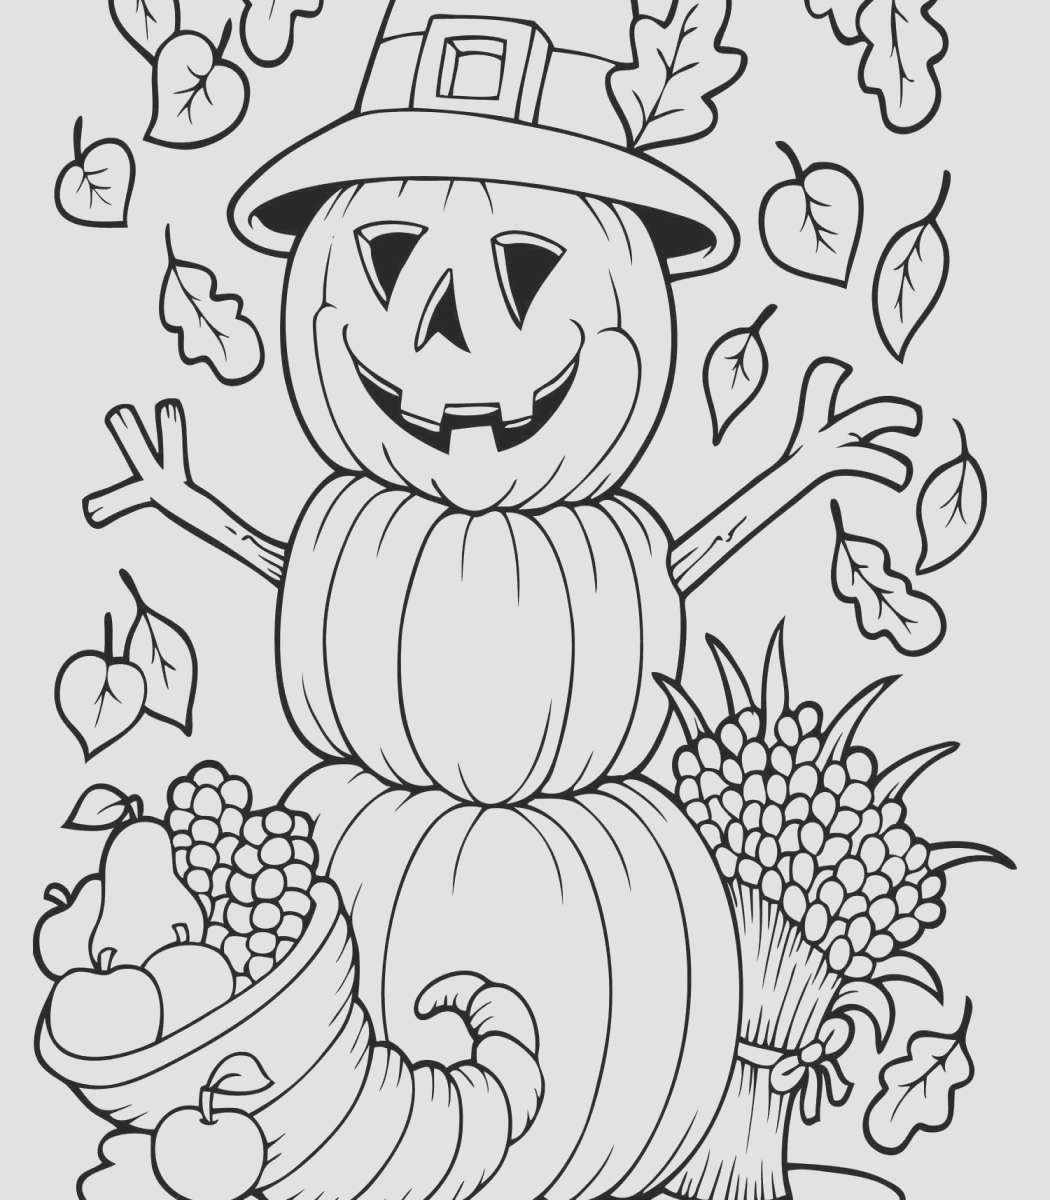 Fall Leaves Coloring Pages Fresh Free Leaf Coloring Pages Toiyeuemz Fall Coloring Pages Fall Coloring Sheets Halloween Coloring Pages [ 1200 x 1050 Pixel ]